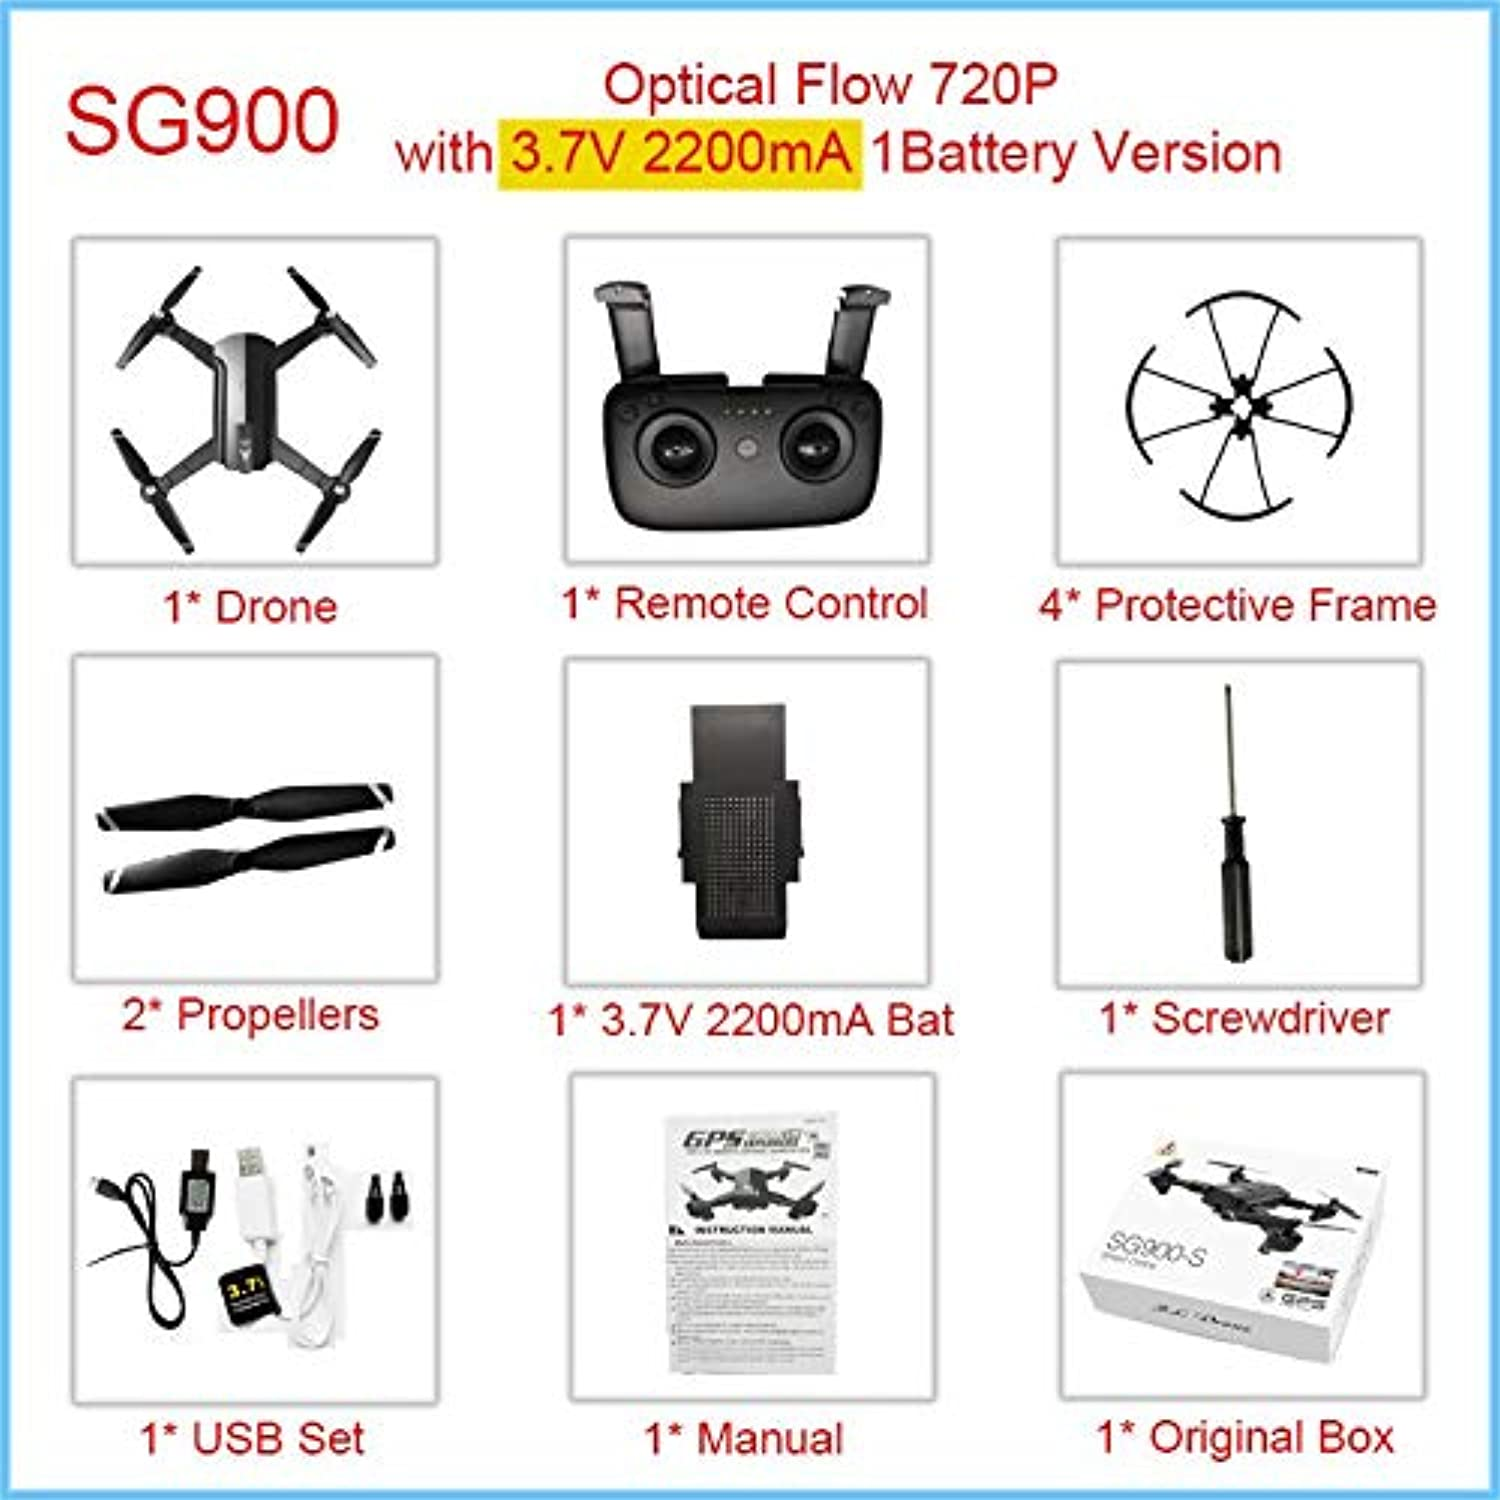 Generic GPS Drone Professional with 1080P 720P WiFi Camera HD Drone Follow Me GPS Fixed Point Foldable SG900 SG900S Drones 20 minutos OF720P2200mA1Bat